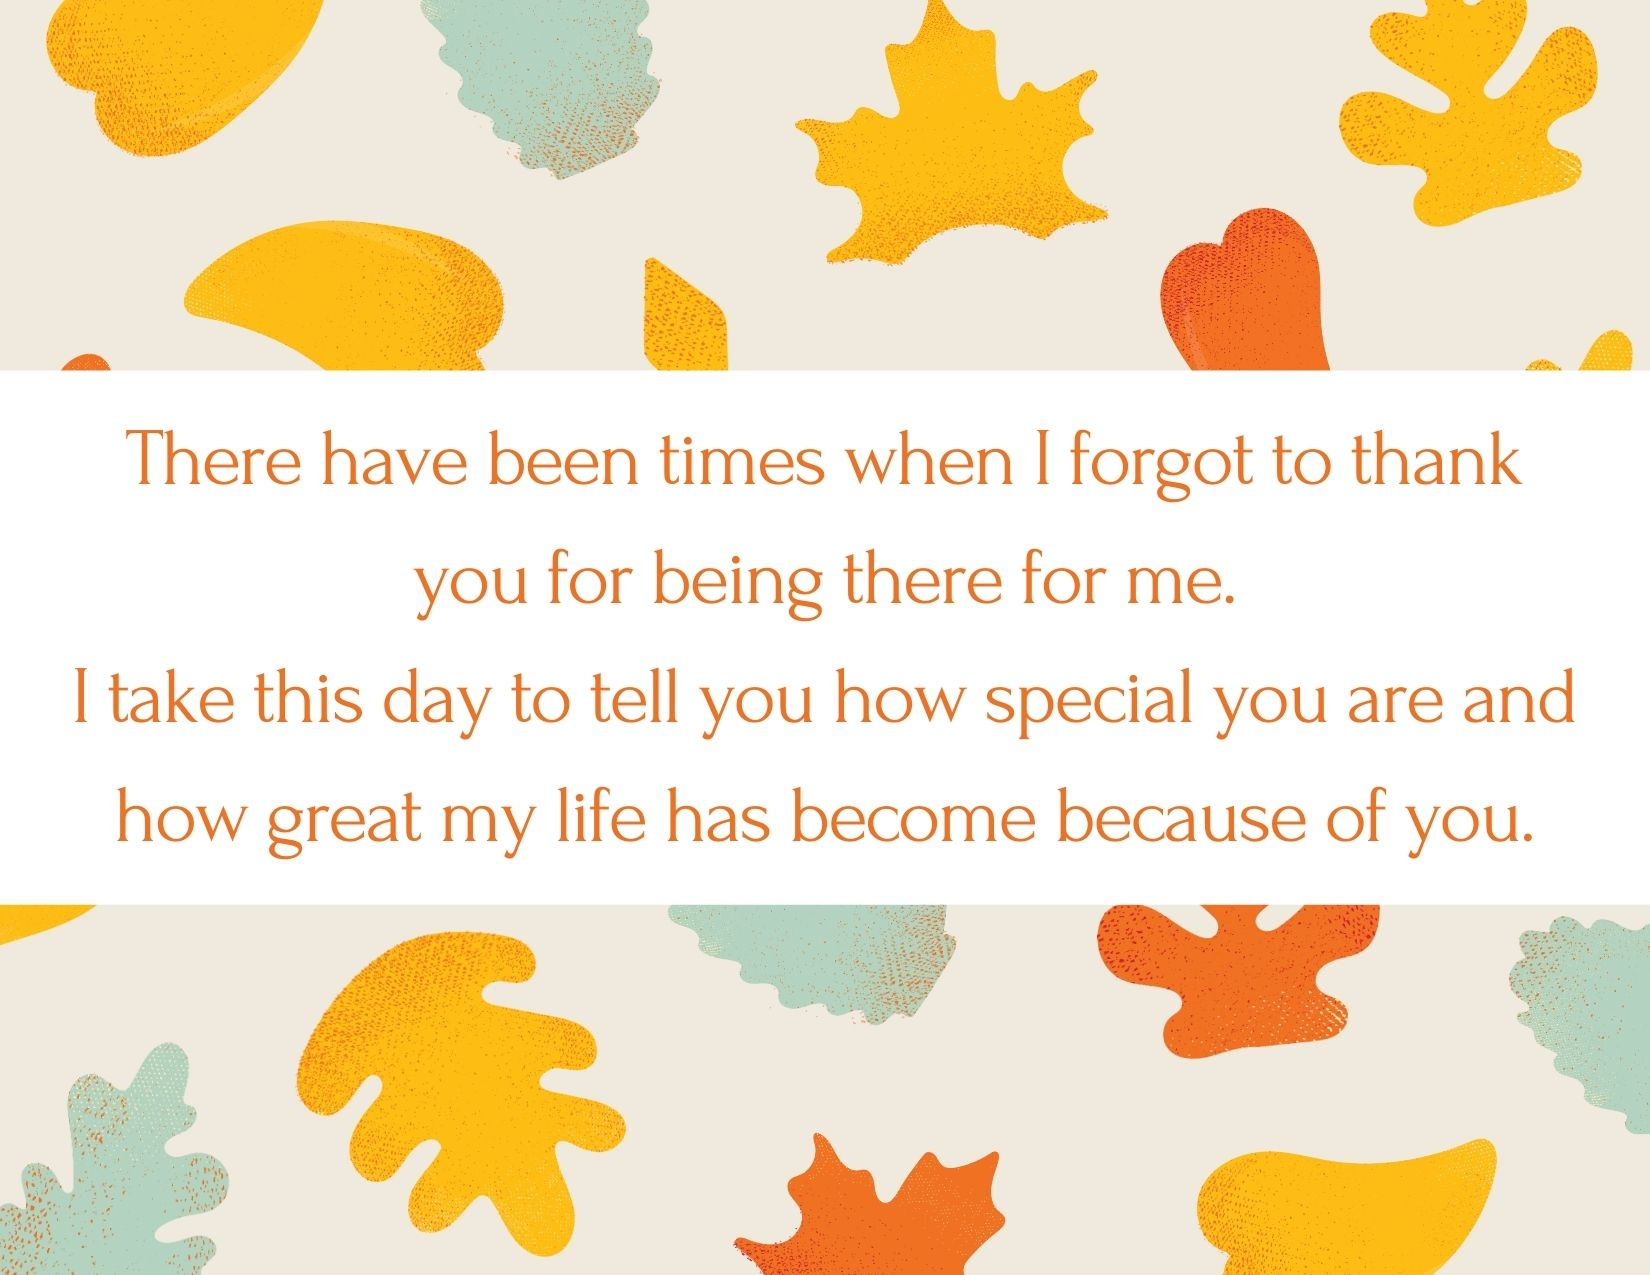 TEXT: There have been times when I forgot to thank you for being there for me. I take this day to tell you how special you are and how great my life has become because of you. IMAGE: fall leaves